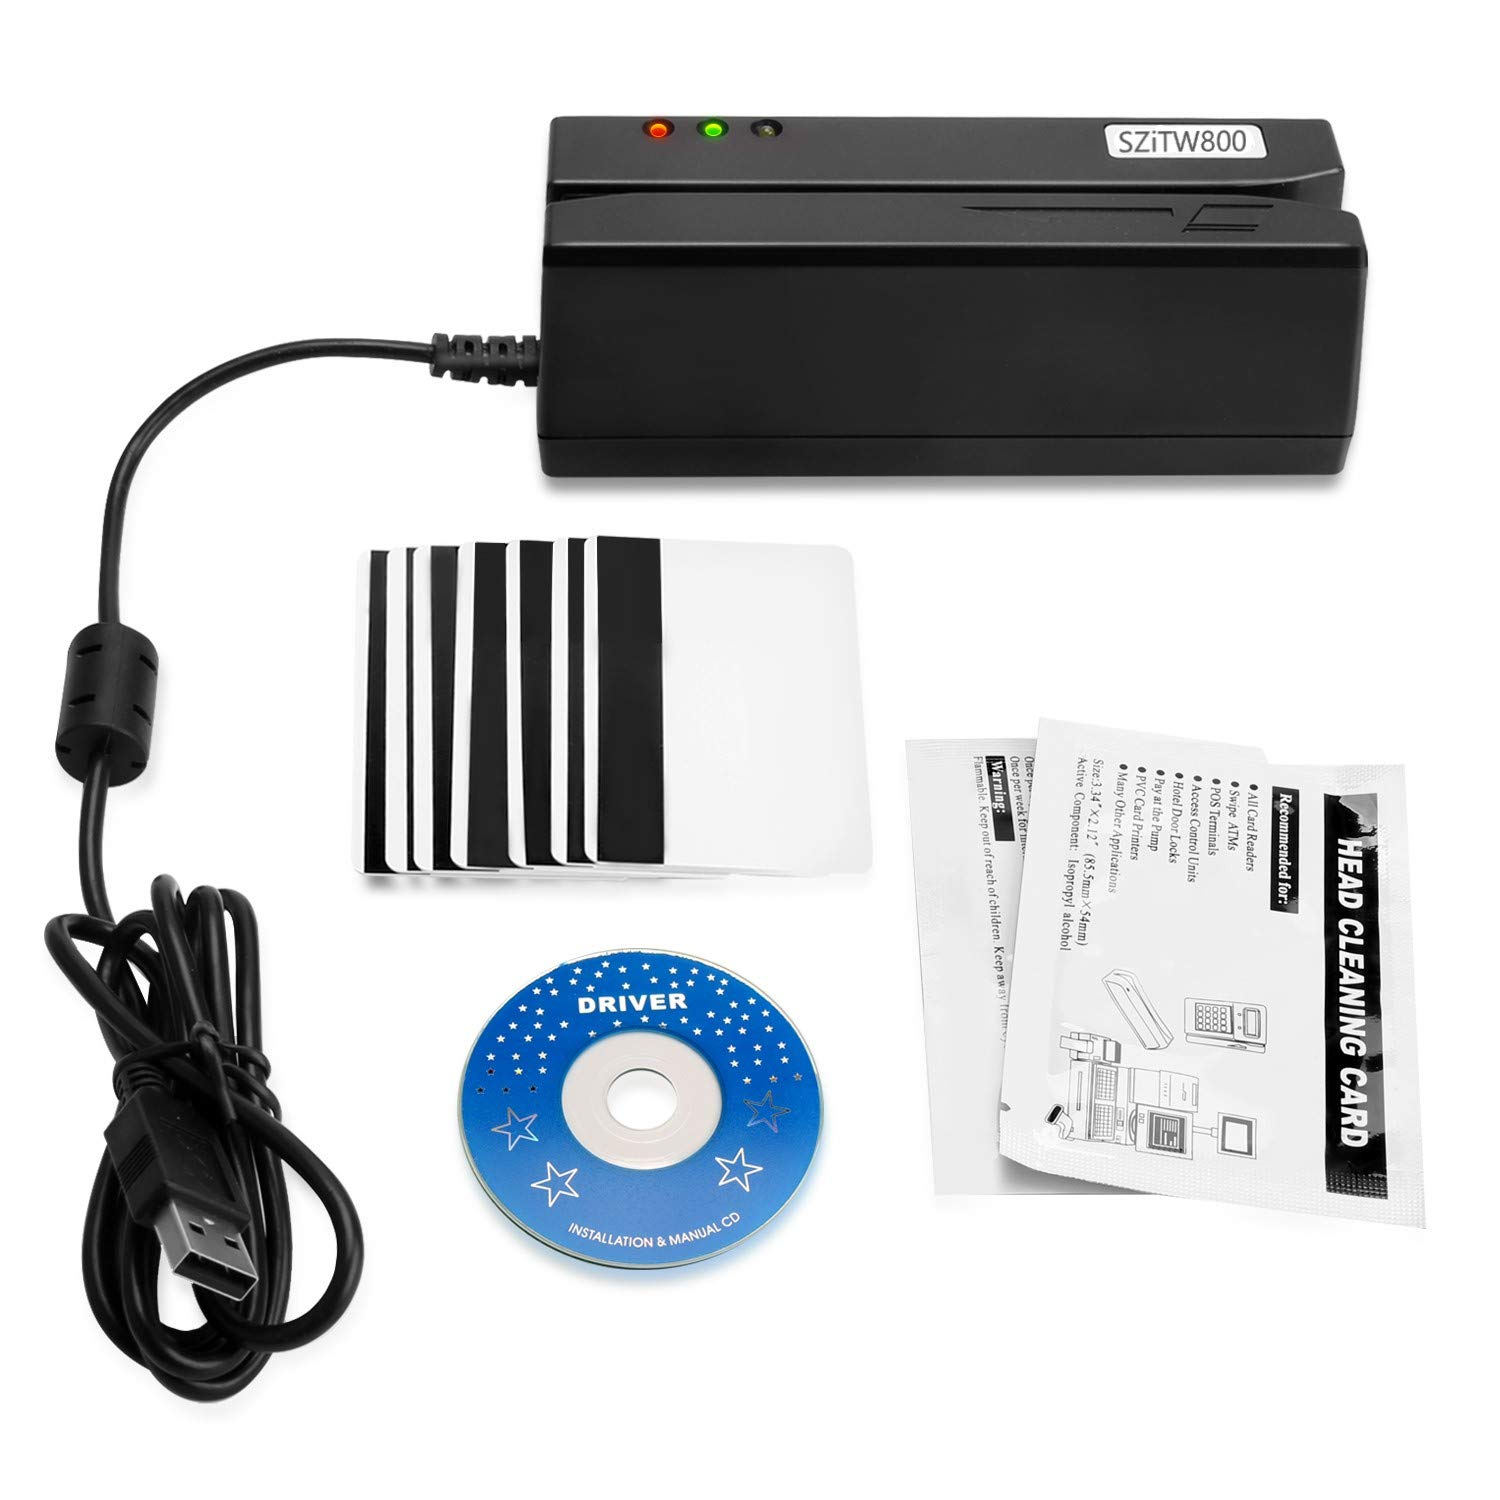 SZiTW800 Mini Magnetic Card Reader Writer Encoder with 10pcs Blank HiCo Magnetic Strip Cards, USB Play and Plug, no Need Adapter, Easy to Read, Copy and Erase Datas from Magnetic Card by SZiTW Reader